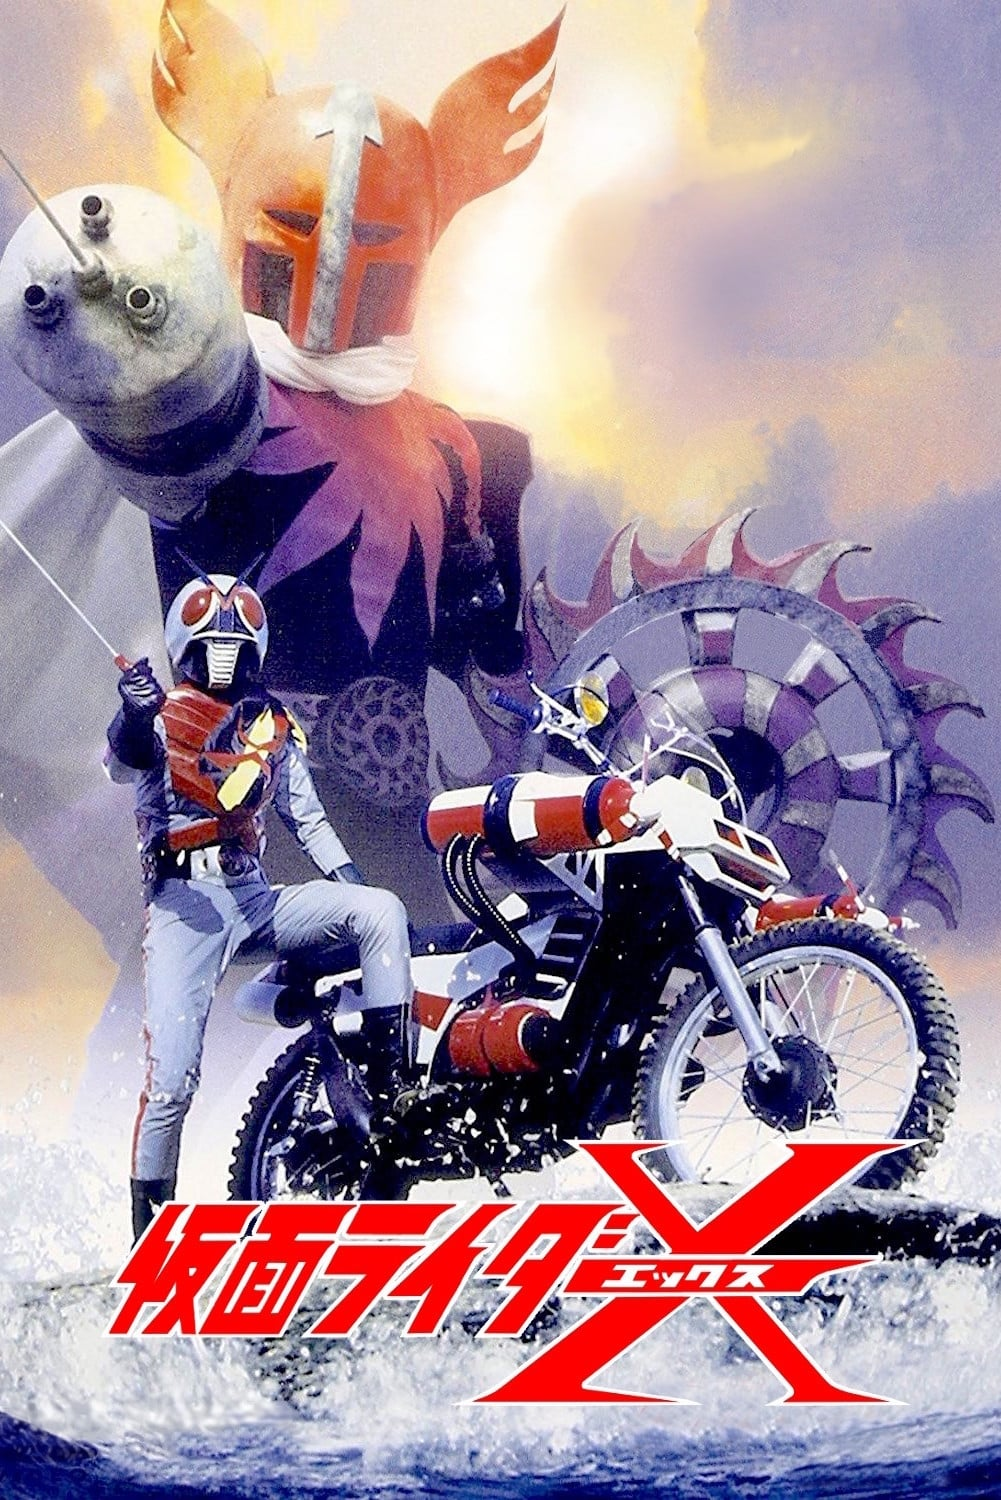 Kamen Rider - Season 21 Episode 34 : Best Friends, Using, That Relationship Season 3